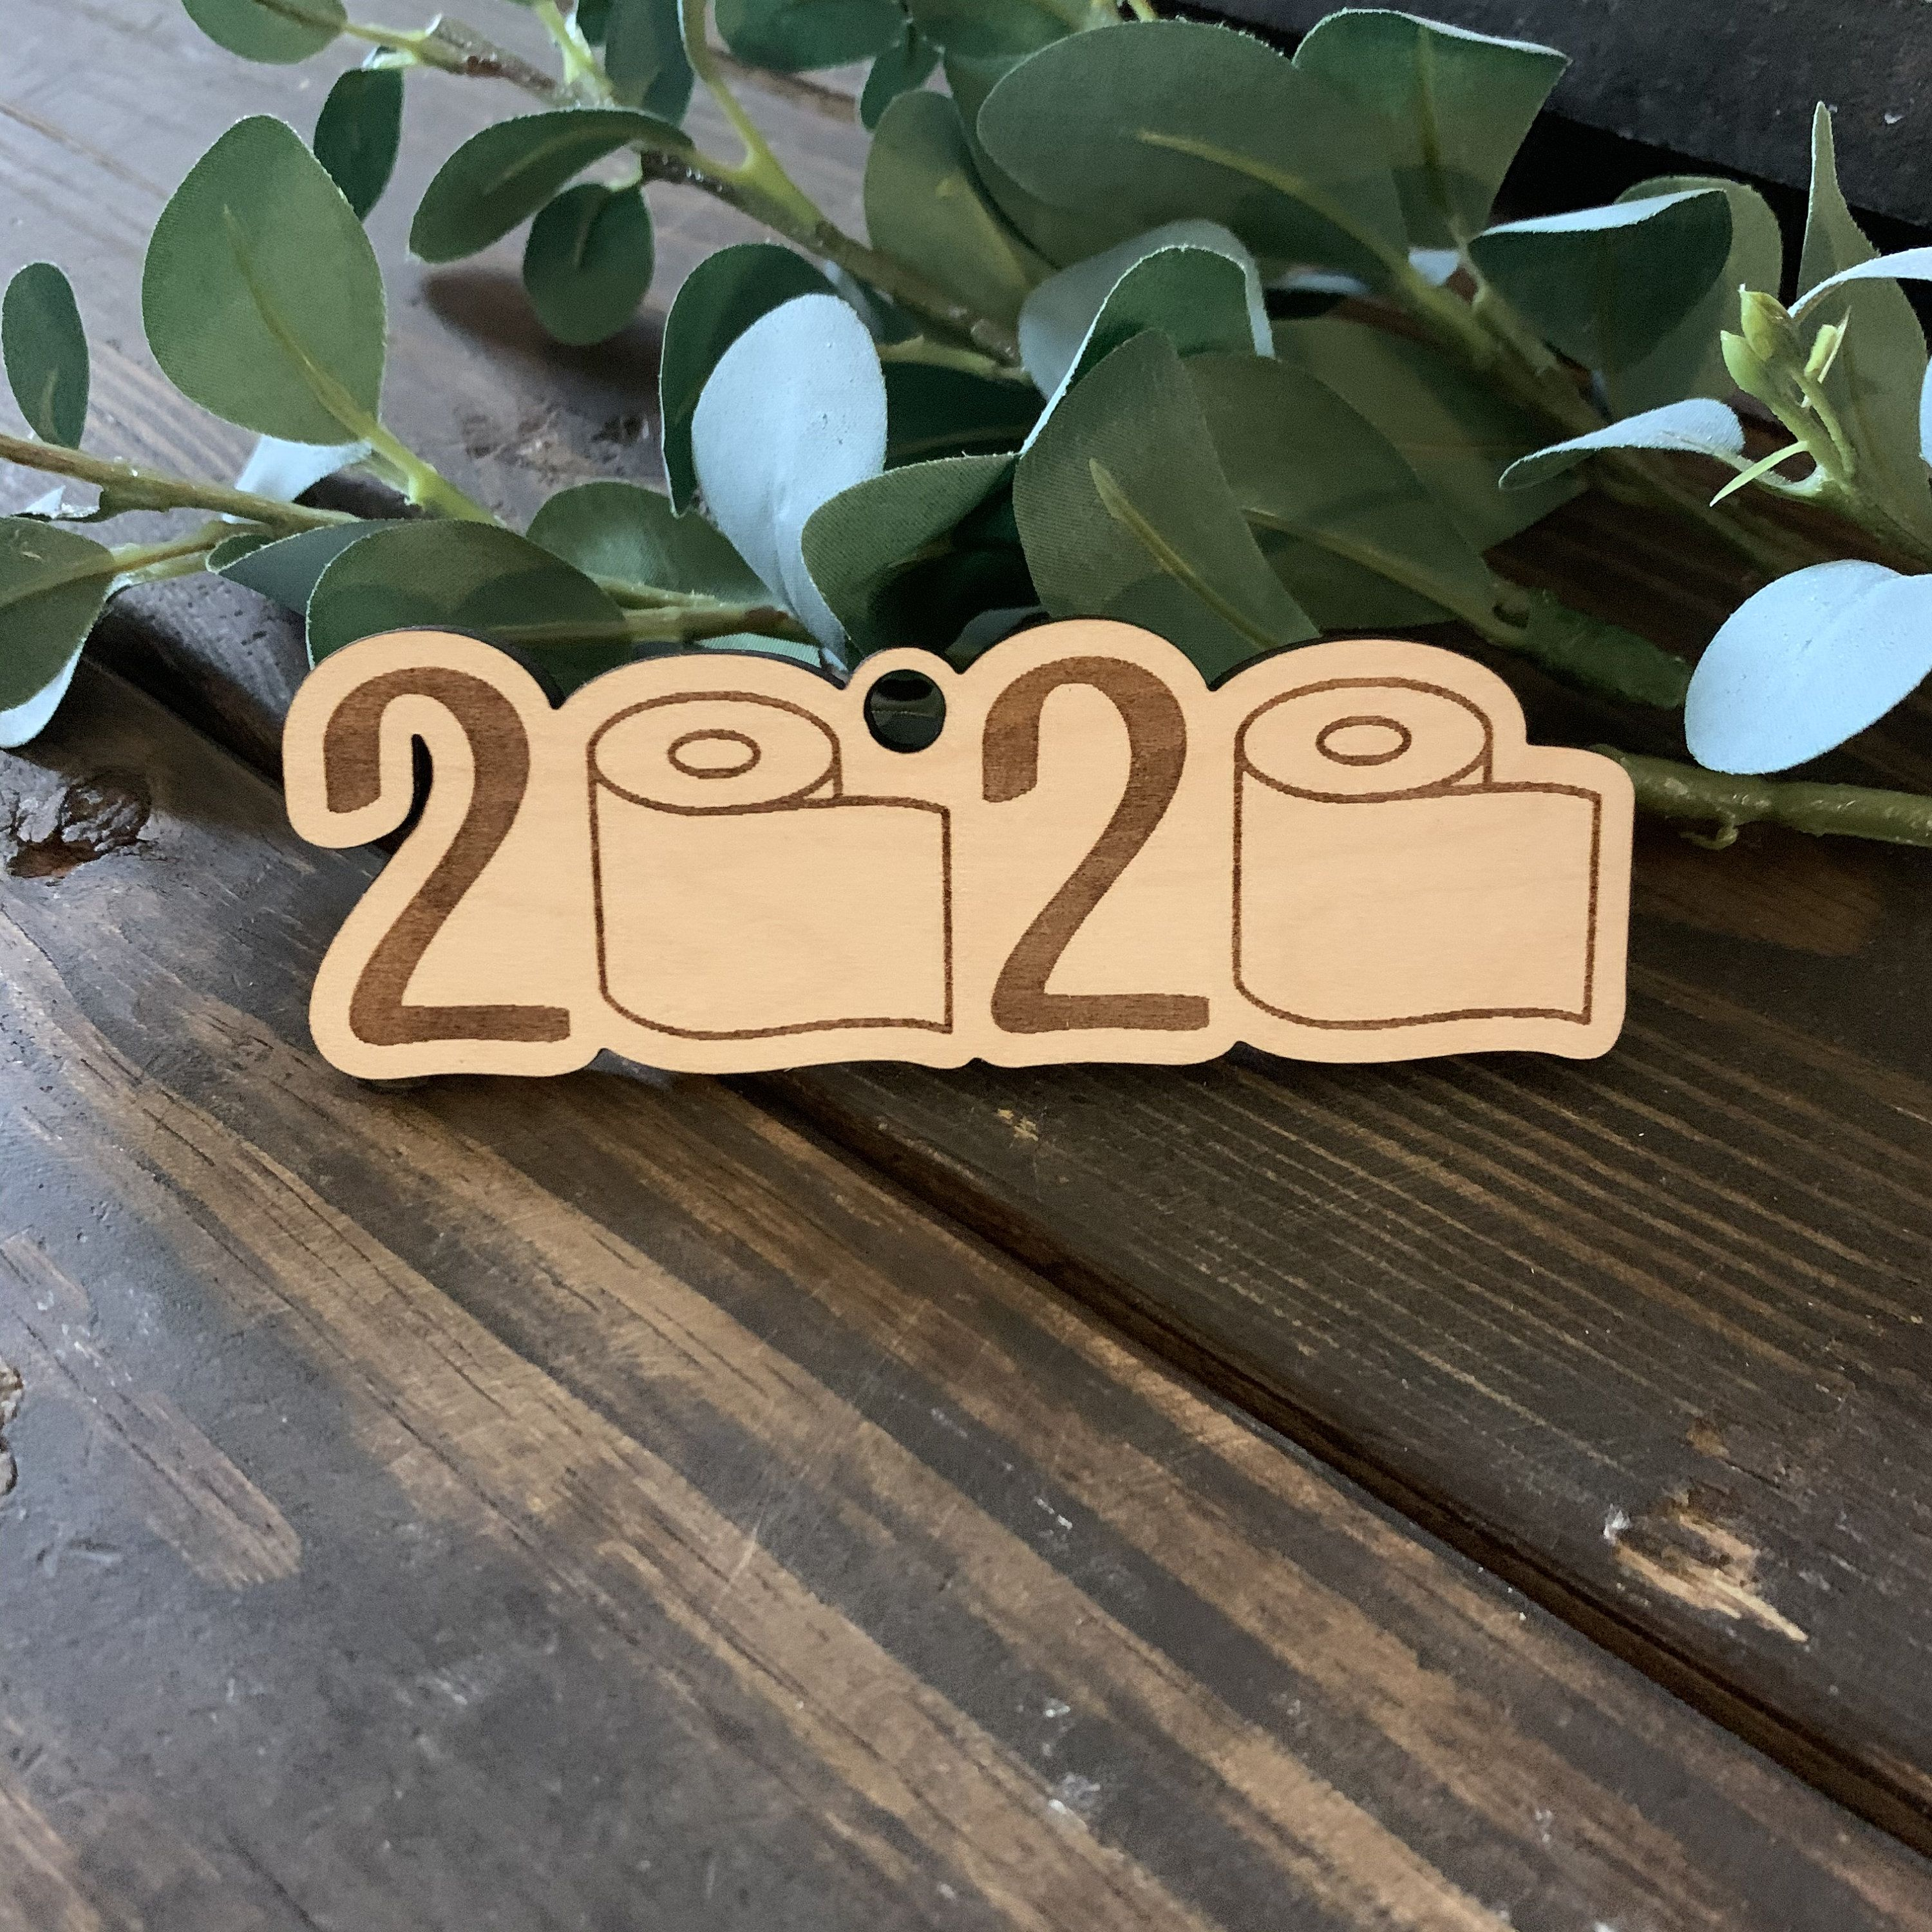 2020 Toilet Paper Ornament Class of 2020 Engraved Wood